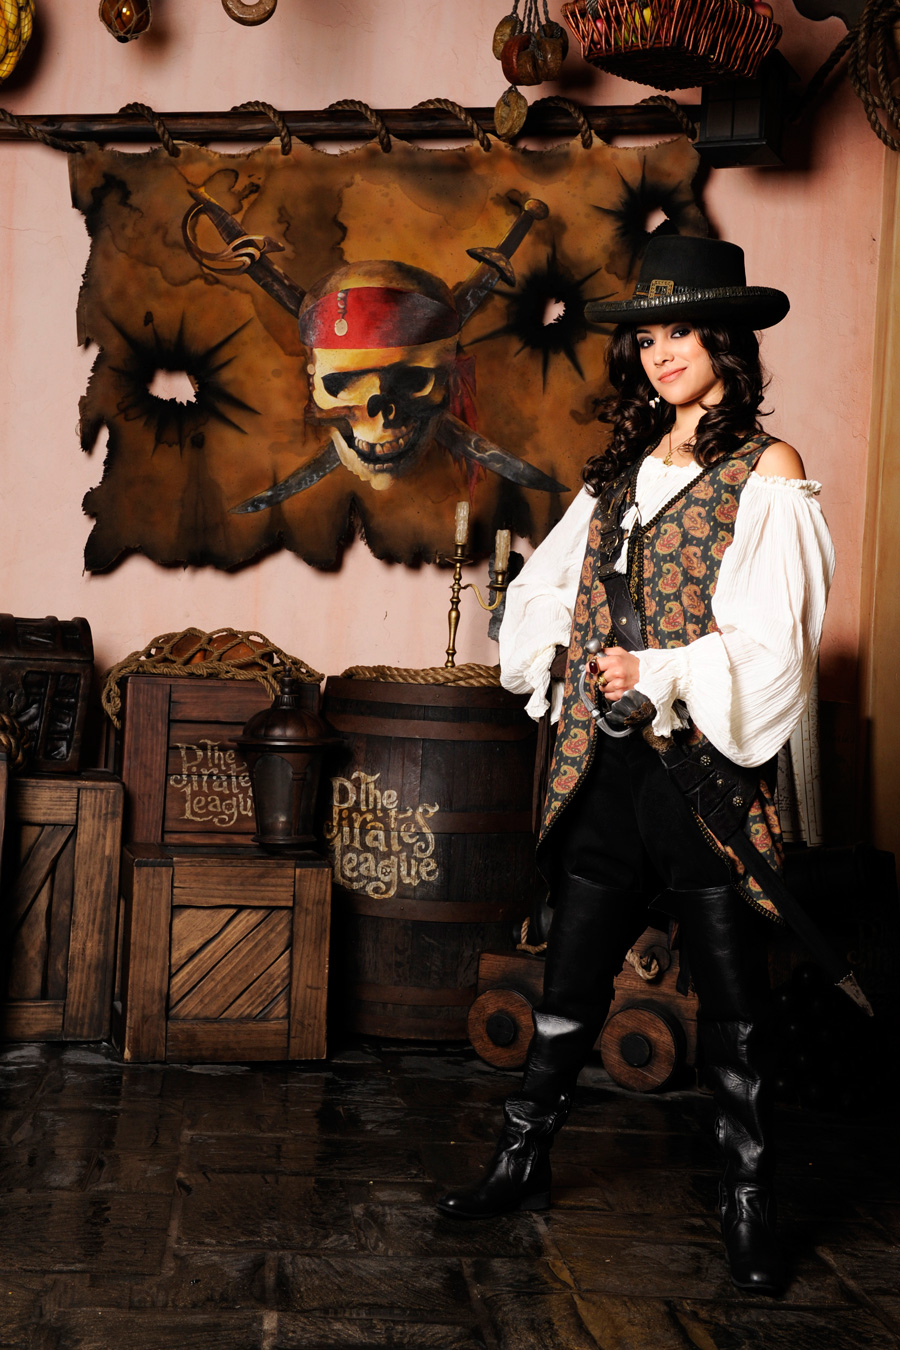 Angelica of 'Pirates of the Caribbean: On Stranger Tides'